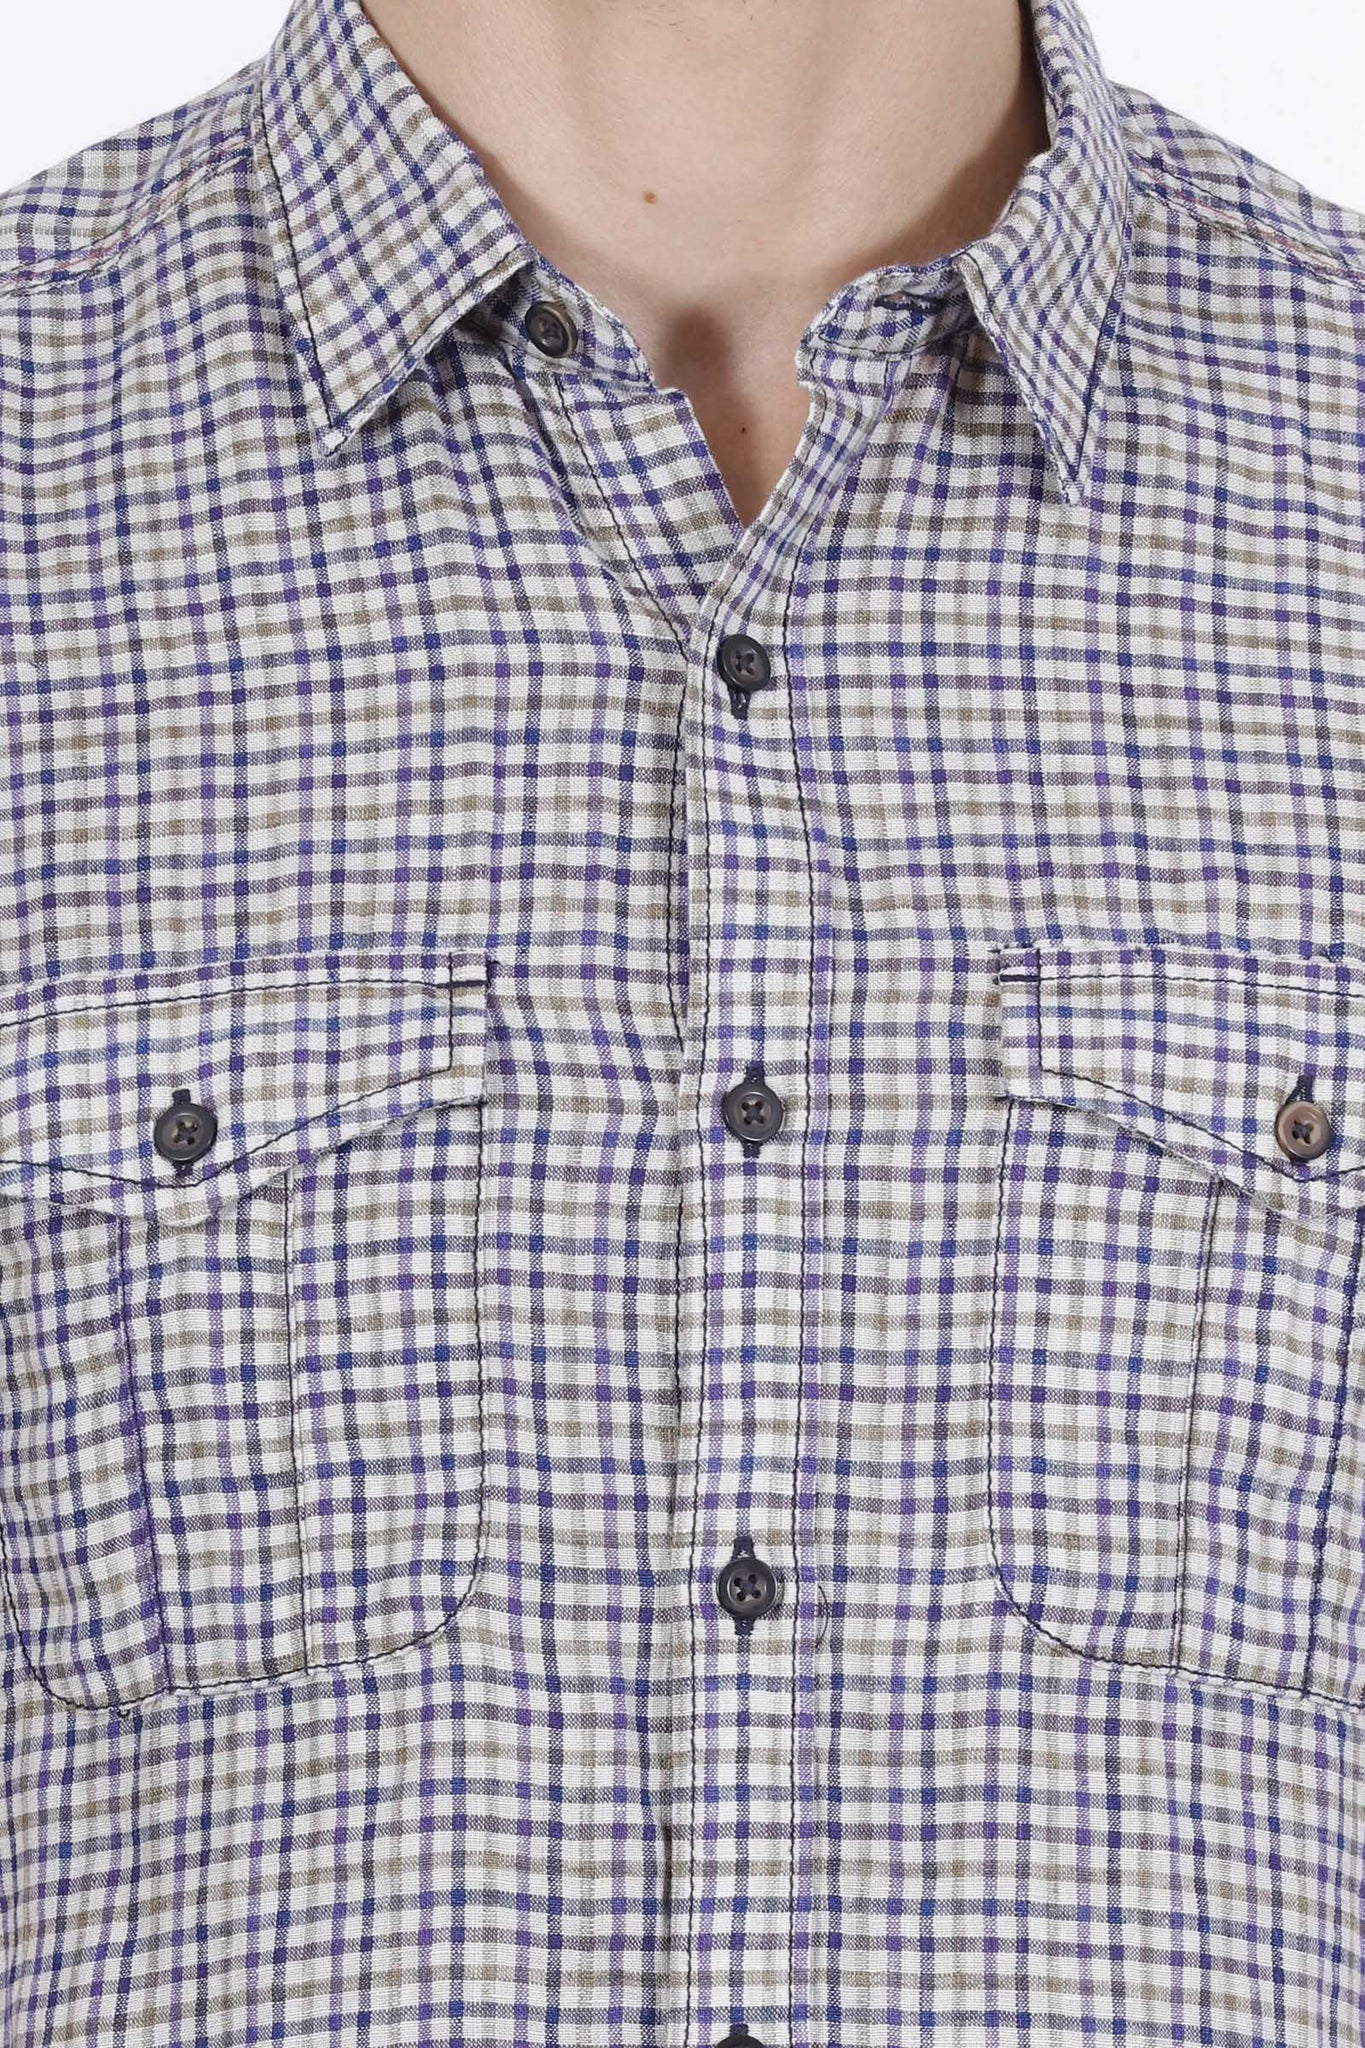 Hunt and Howe Multicolored 100% Linen Half Sleeve Shirt